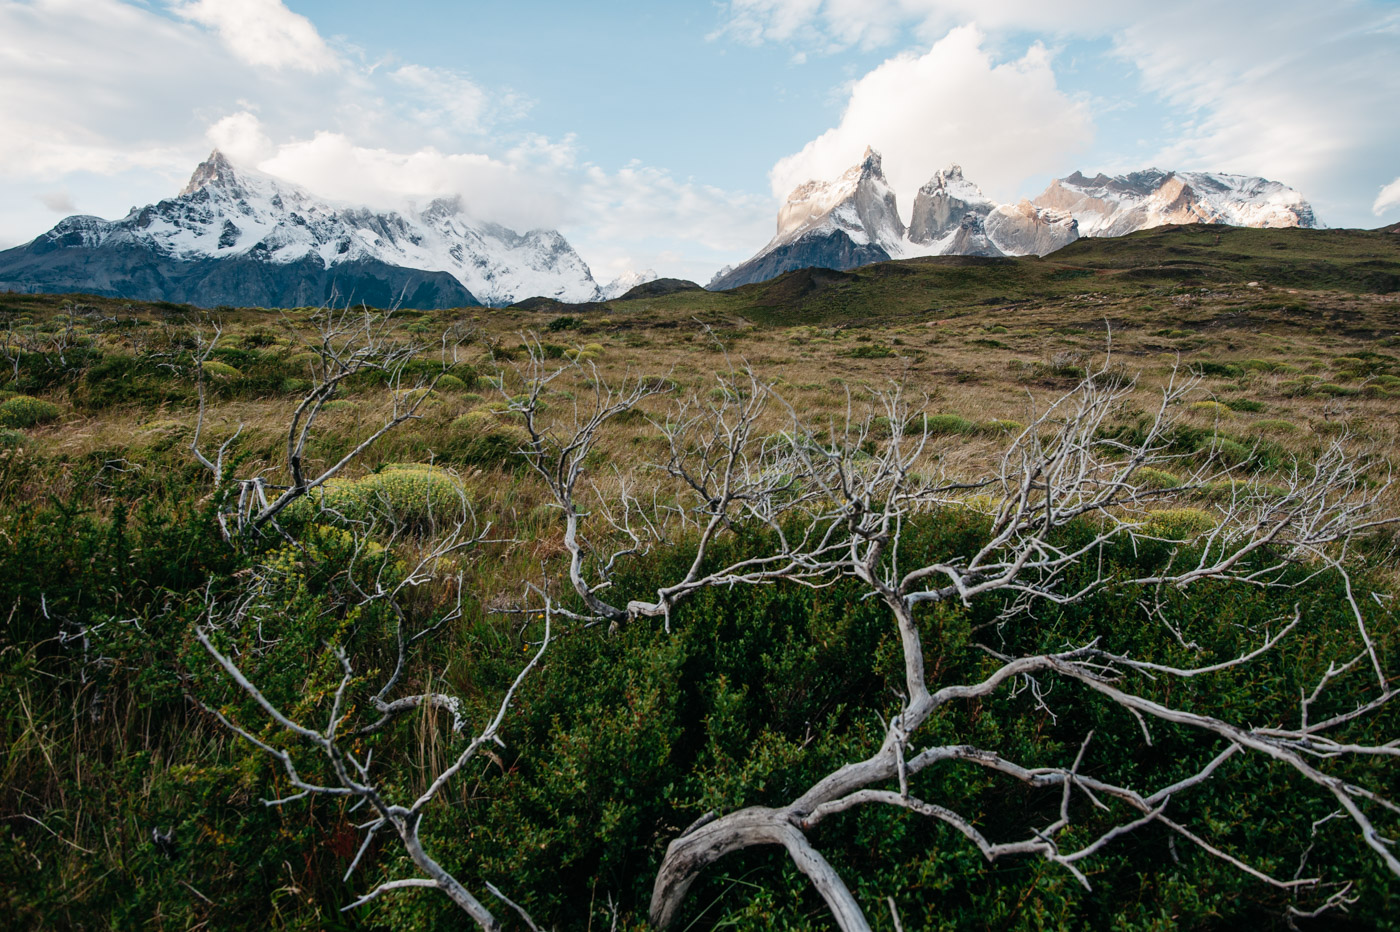 Torres del Paine at sunset with weathered wood in foreground